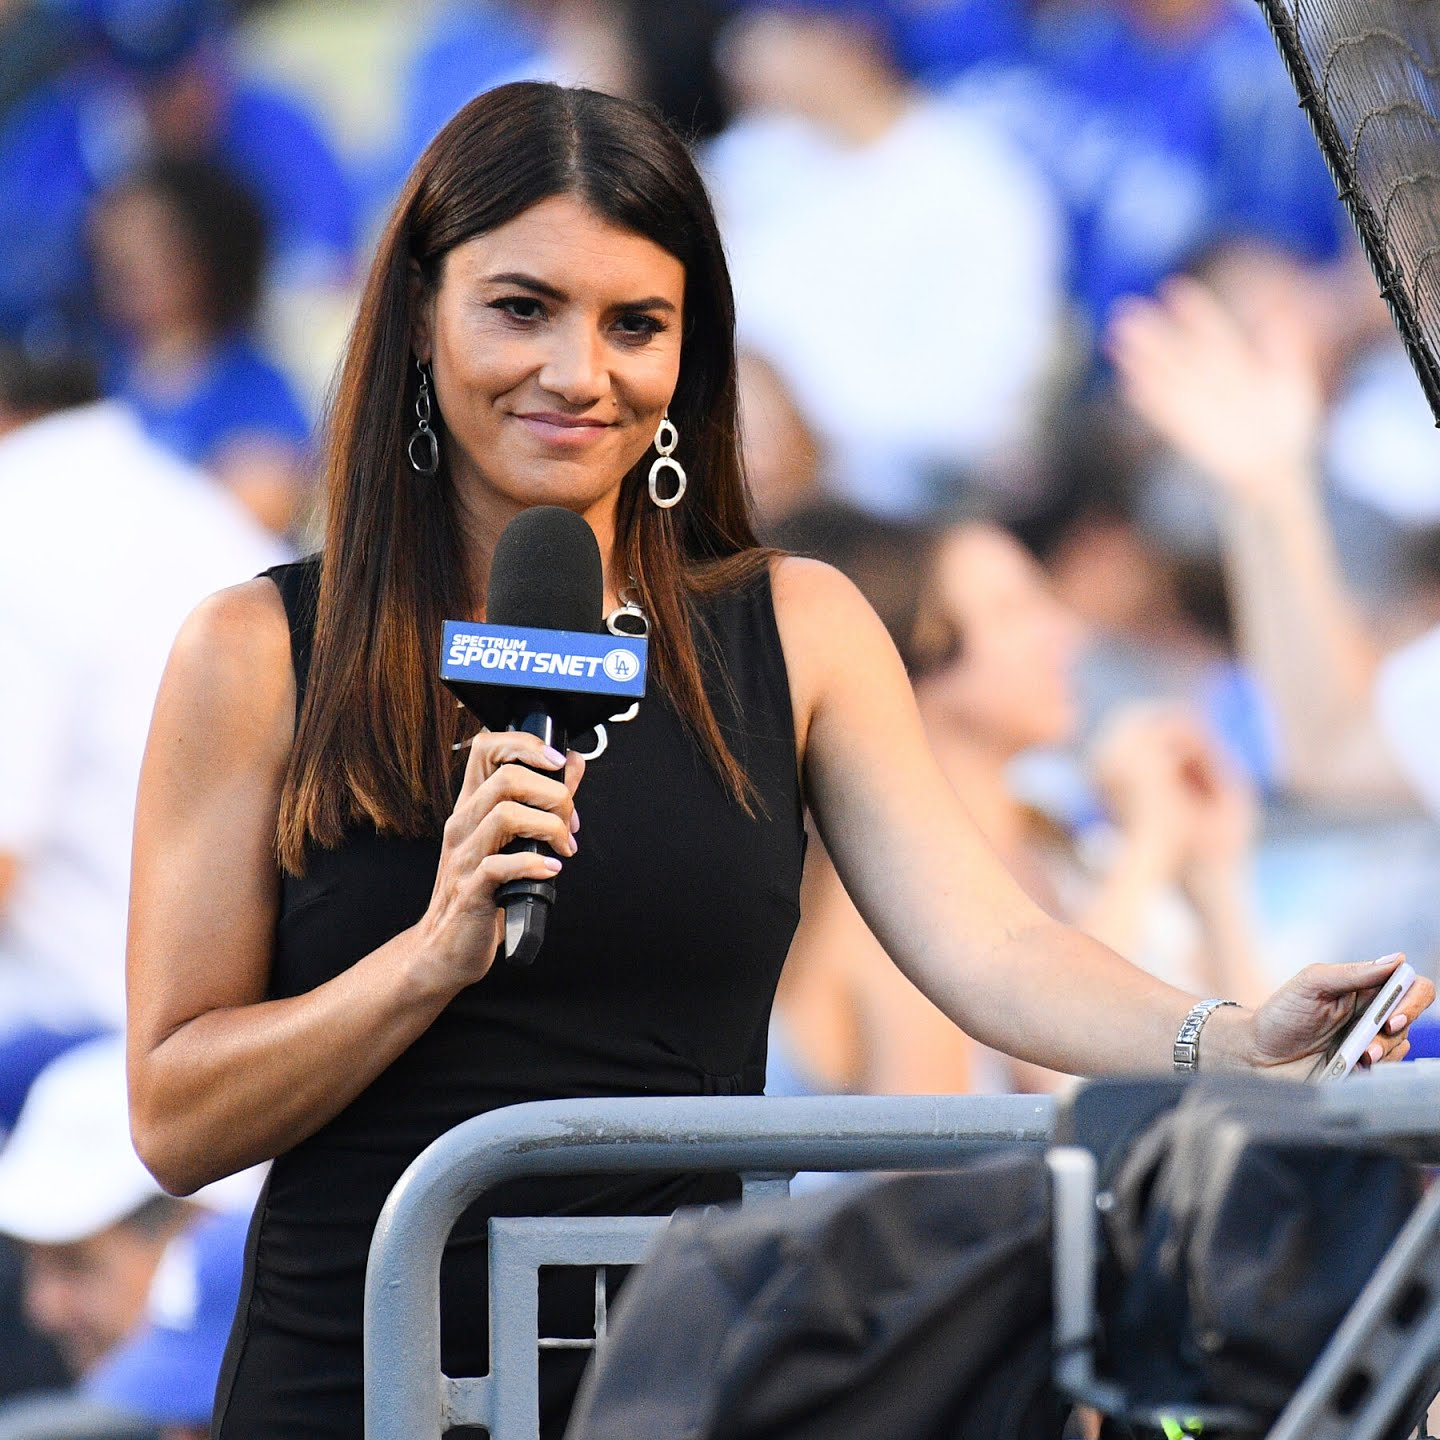 Alanna Rizzo has worked with the Los Angeles Dodgers and MLB Network. She will handle on-field interviews at next week's game.